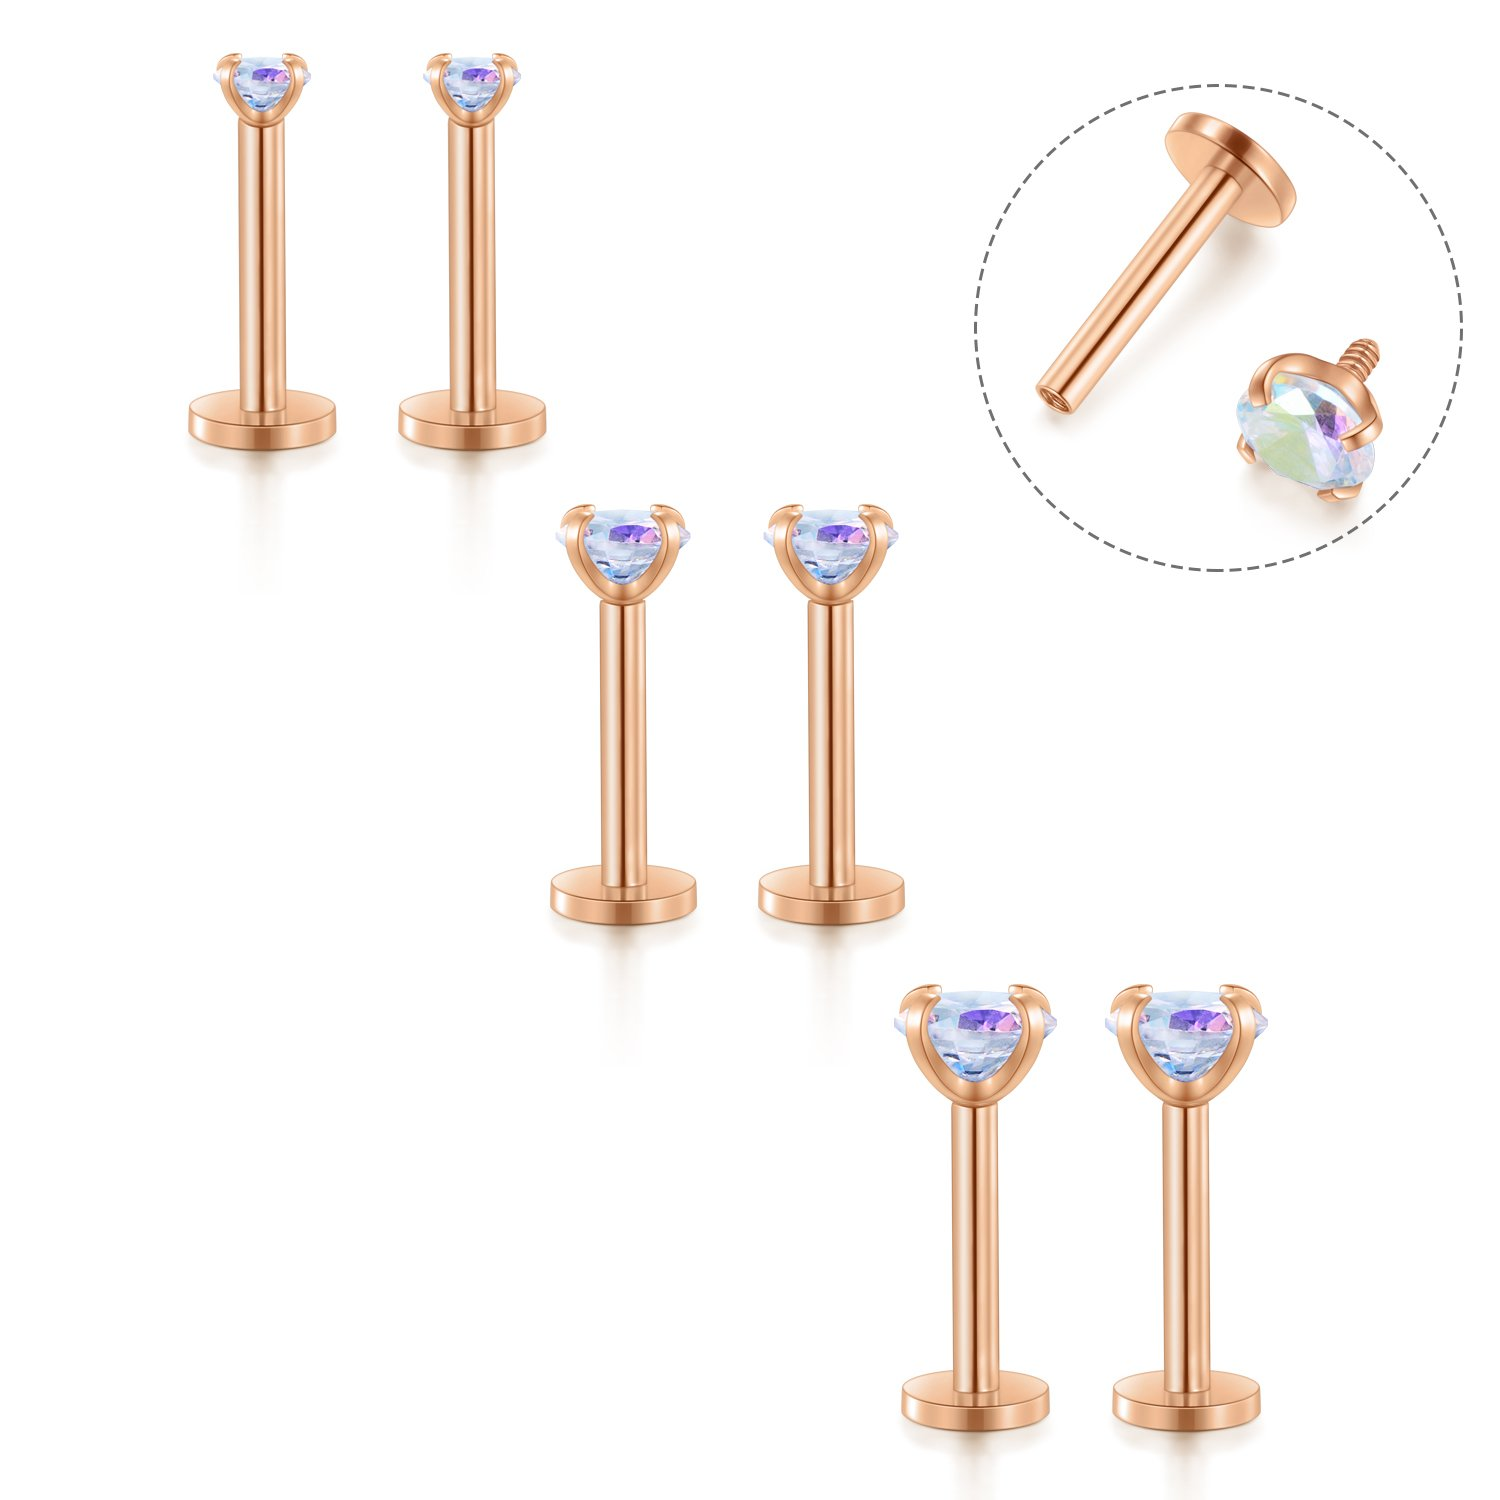 Fectas 16G Cartilage Earring Stud Forward Helix Earrings Internal Threaded Labret Lip Medusa Monroe Piercing Ring Rose Gold 2 Pairs